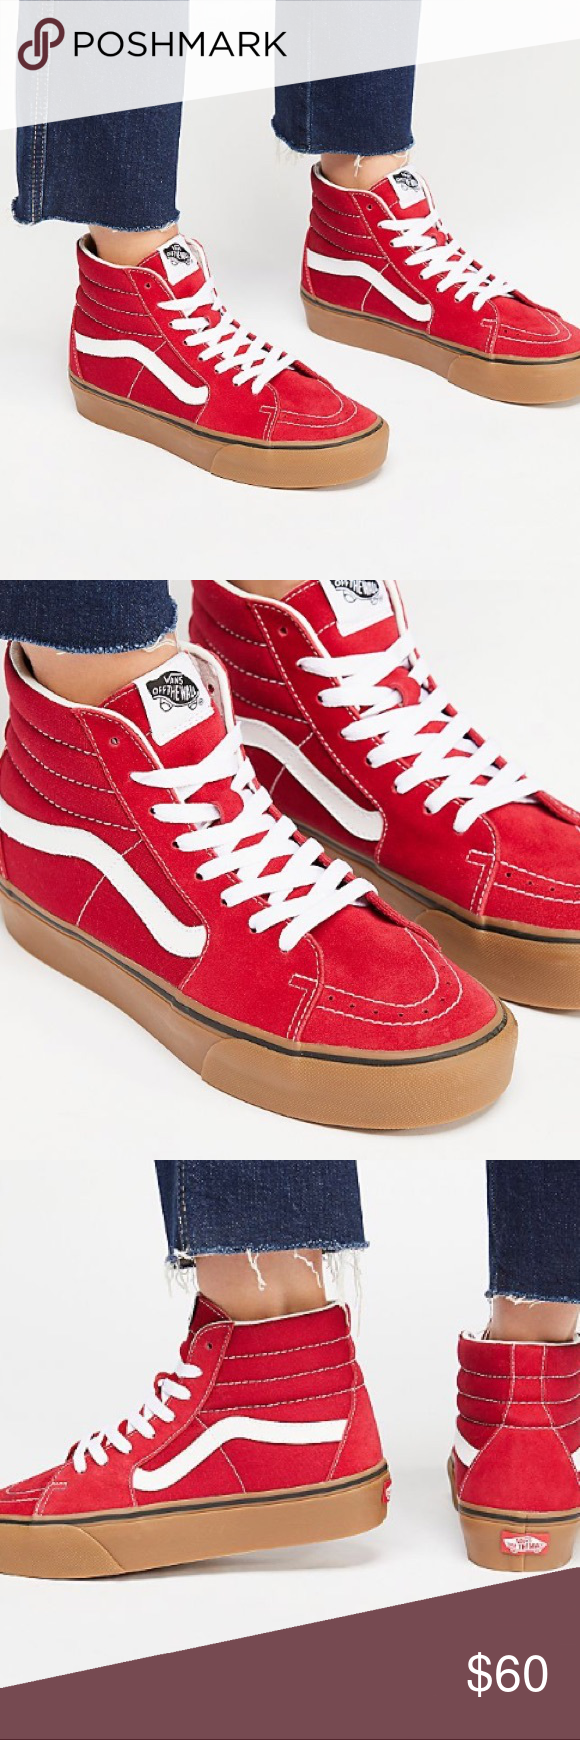 Vans Sk8 hi platform in red Bright red vans with gum sole. Worn only once  and in excellent condition. No box included. Size 9 women s. Vans Shoes  Sneakers d8d725361